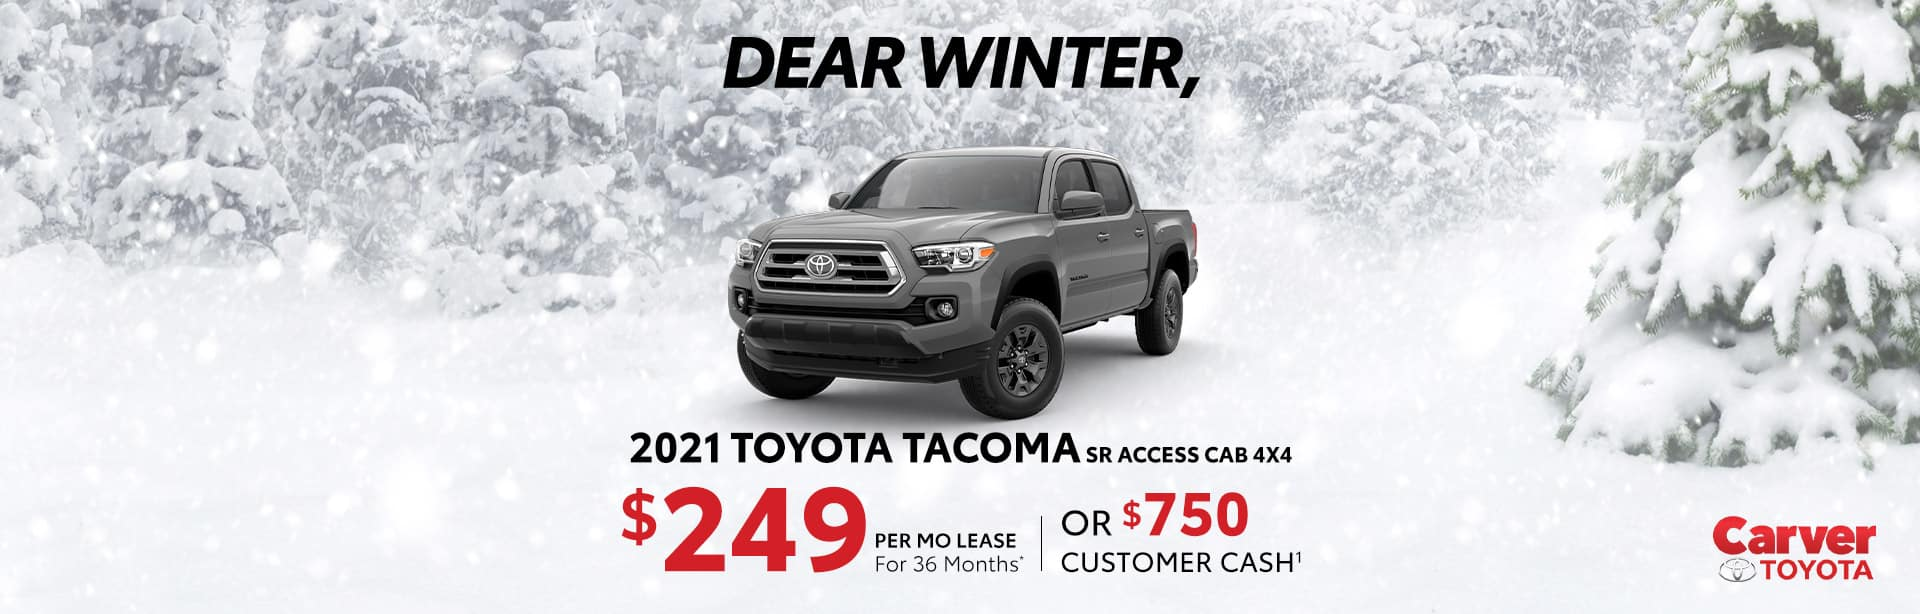 2021Toyota Tacoma Lease and Rebate offer near Taylorsville IN